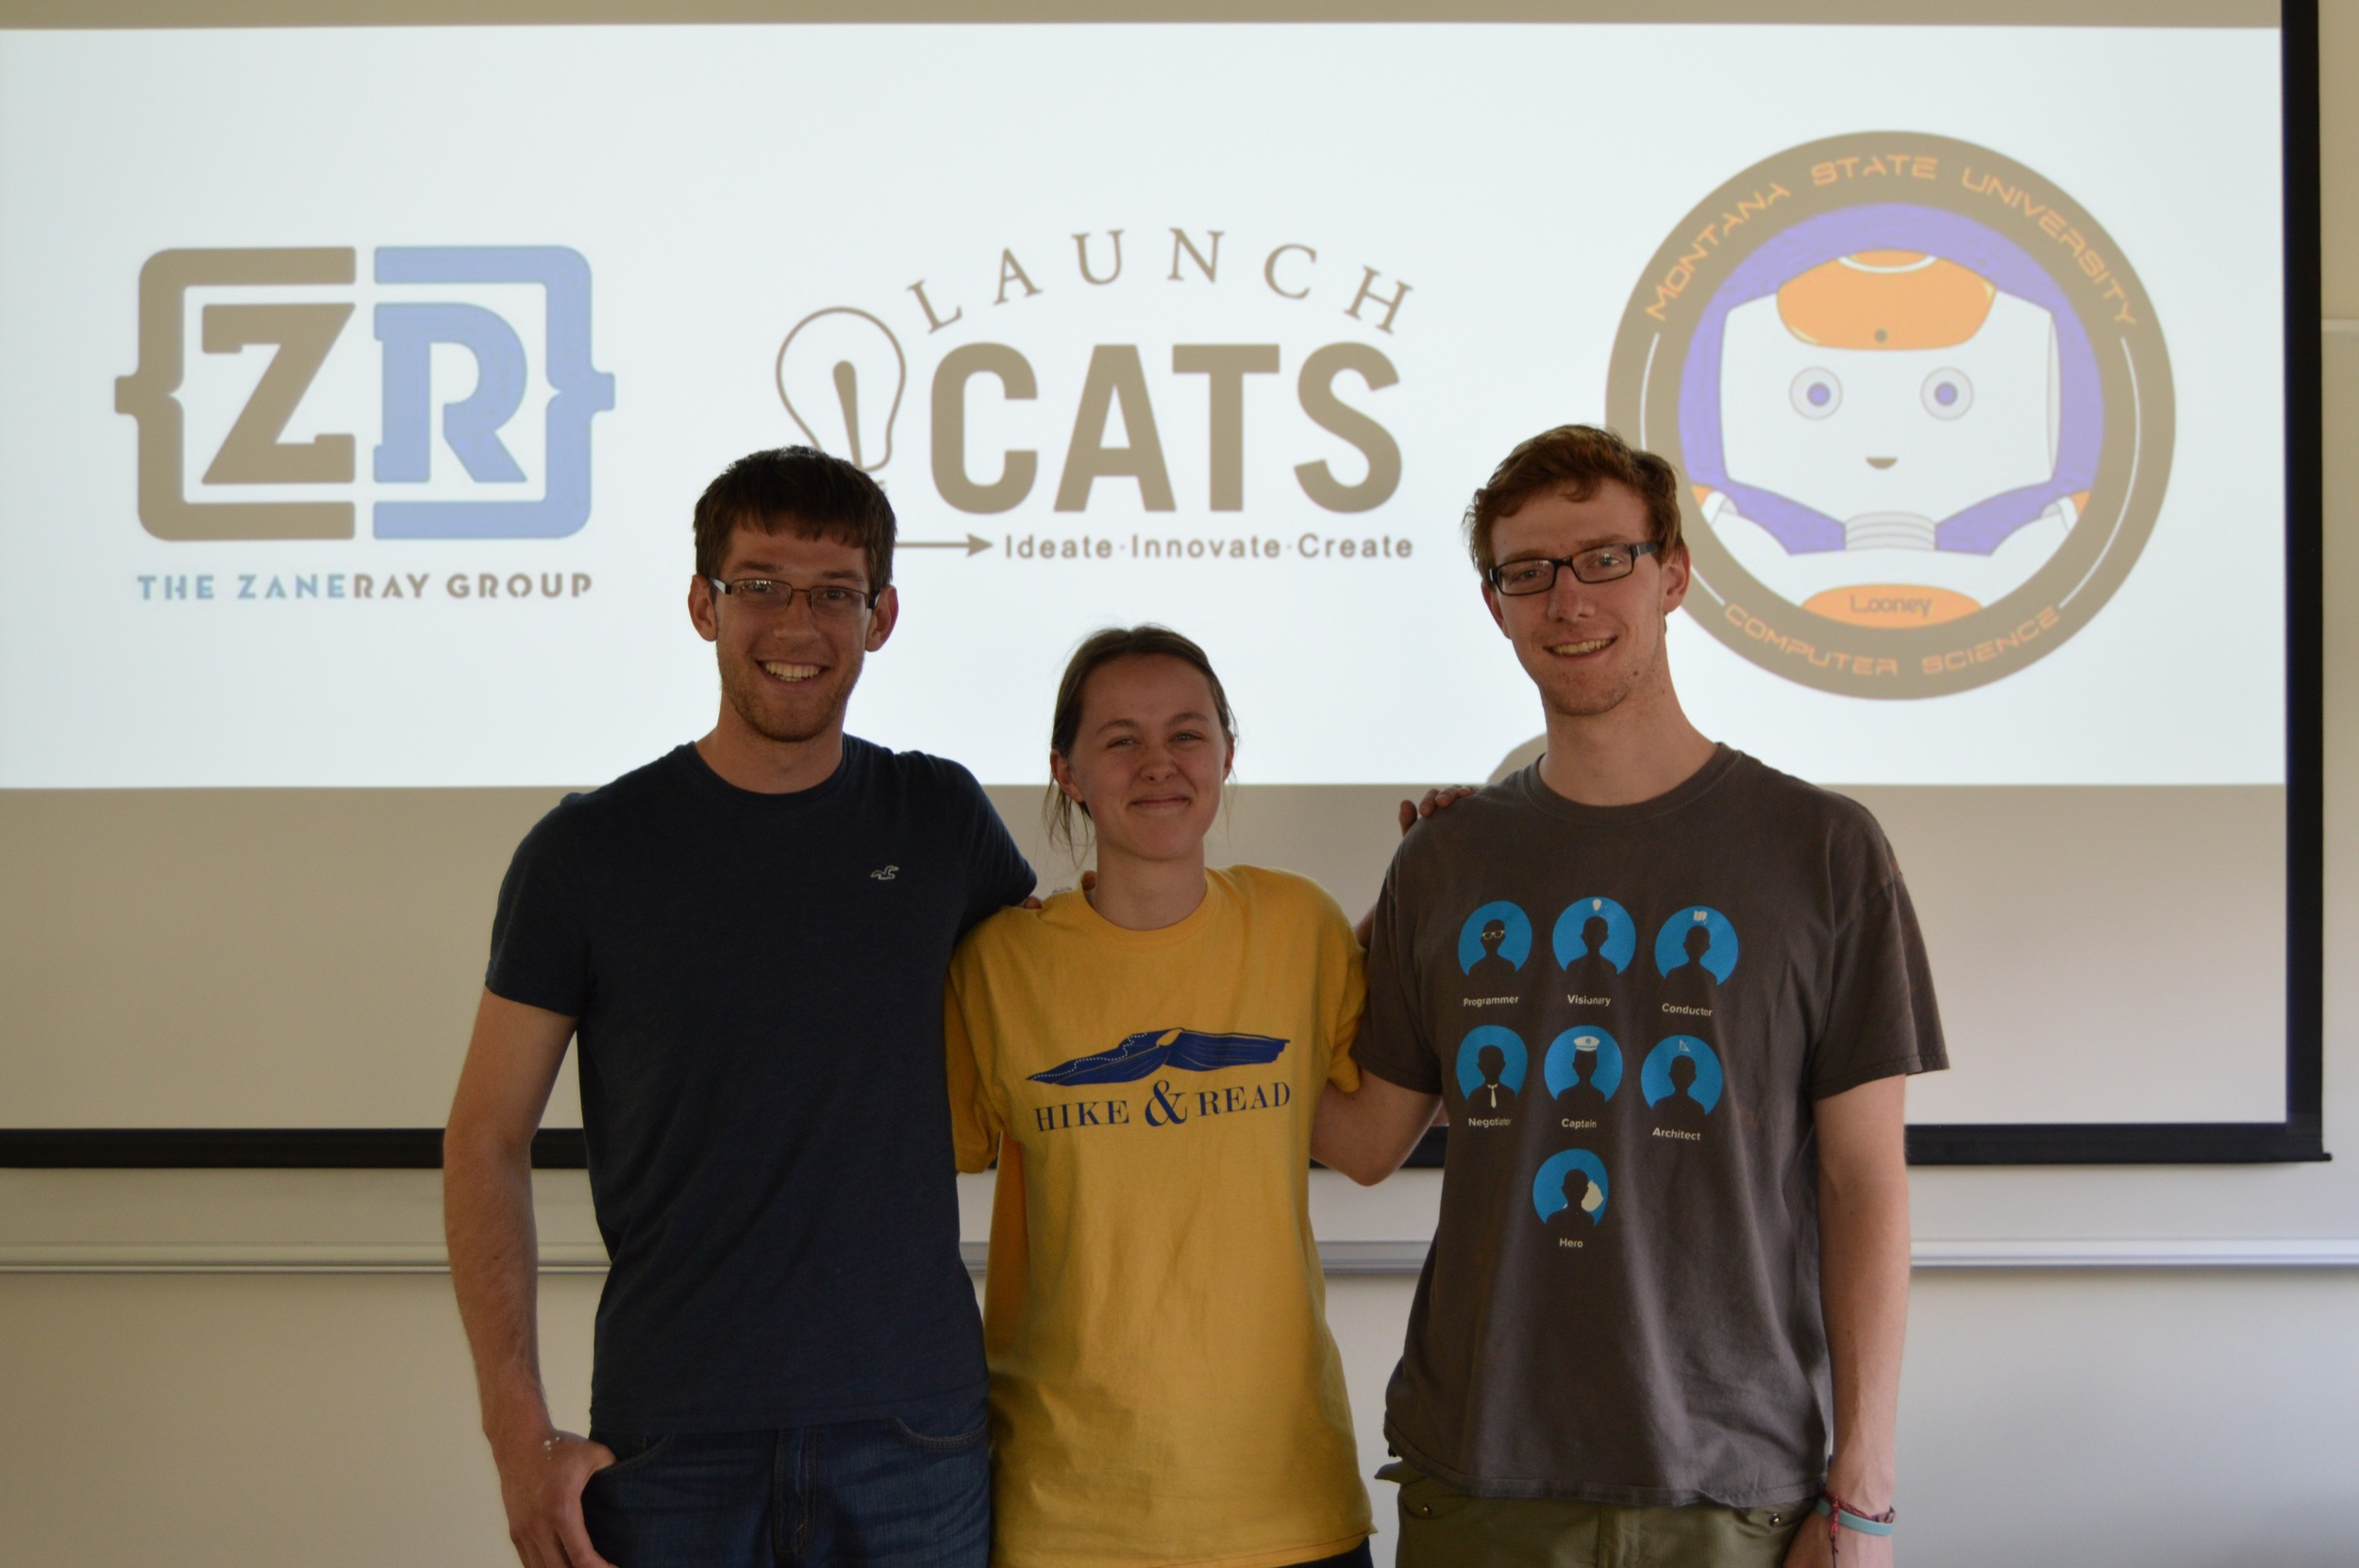 Team Stupid Code takes 2nd Place. They built a 3D game set in 1918 France centered around the journey of a woman searching for her MIA husband. In their demo you got to experience her journey as she traveled from paris to the battle-torn Vimy Ridge.